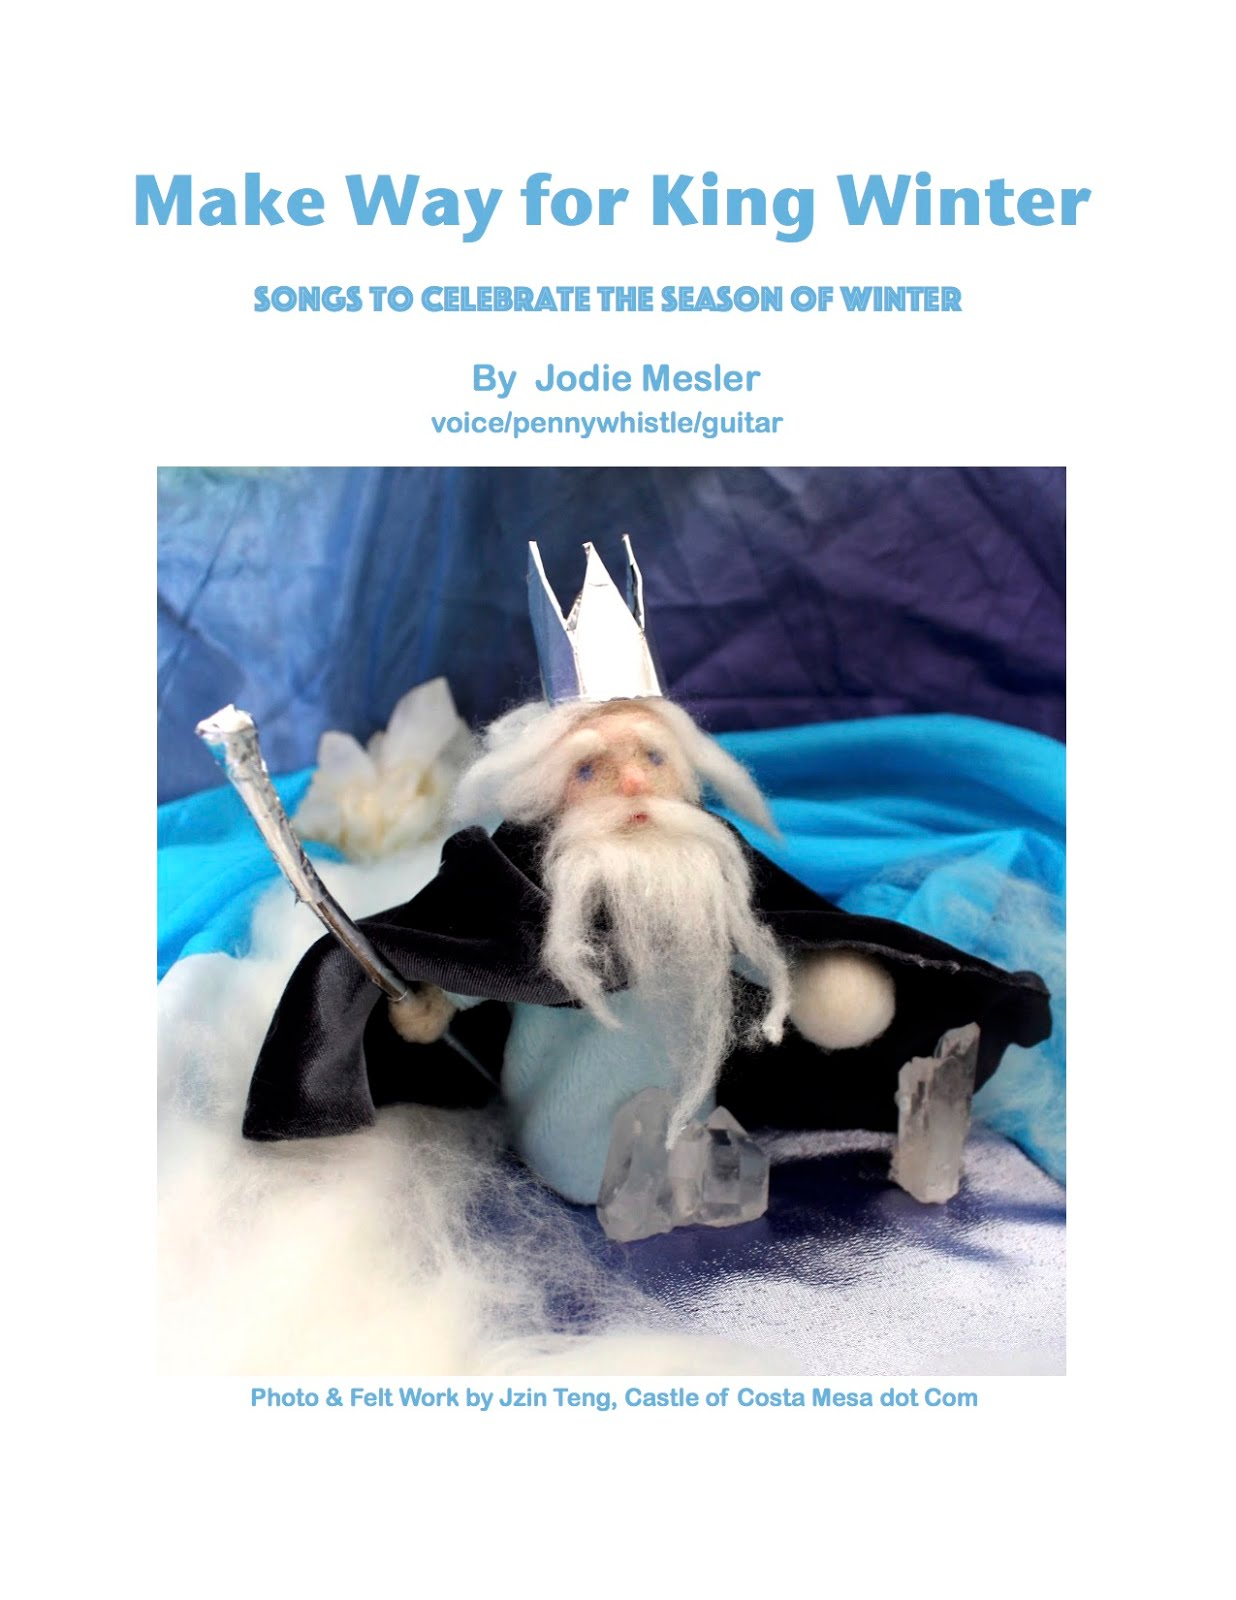 Make Way for King Winter $20